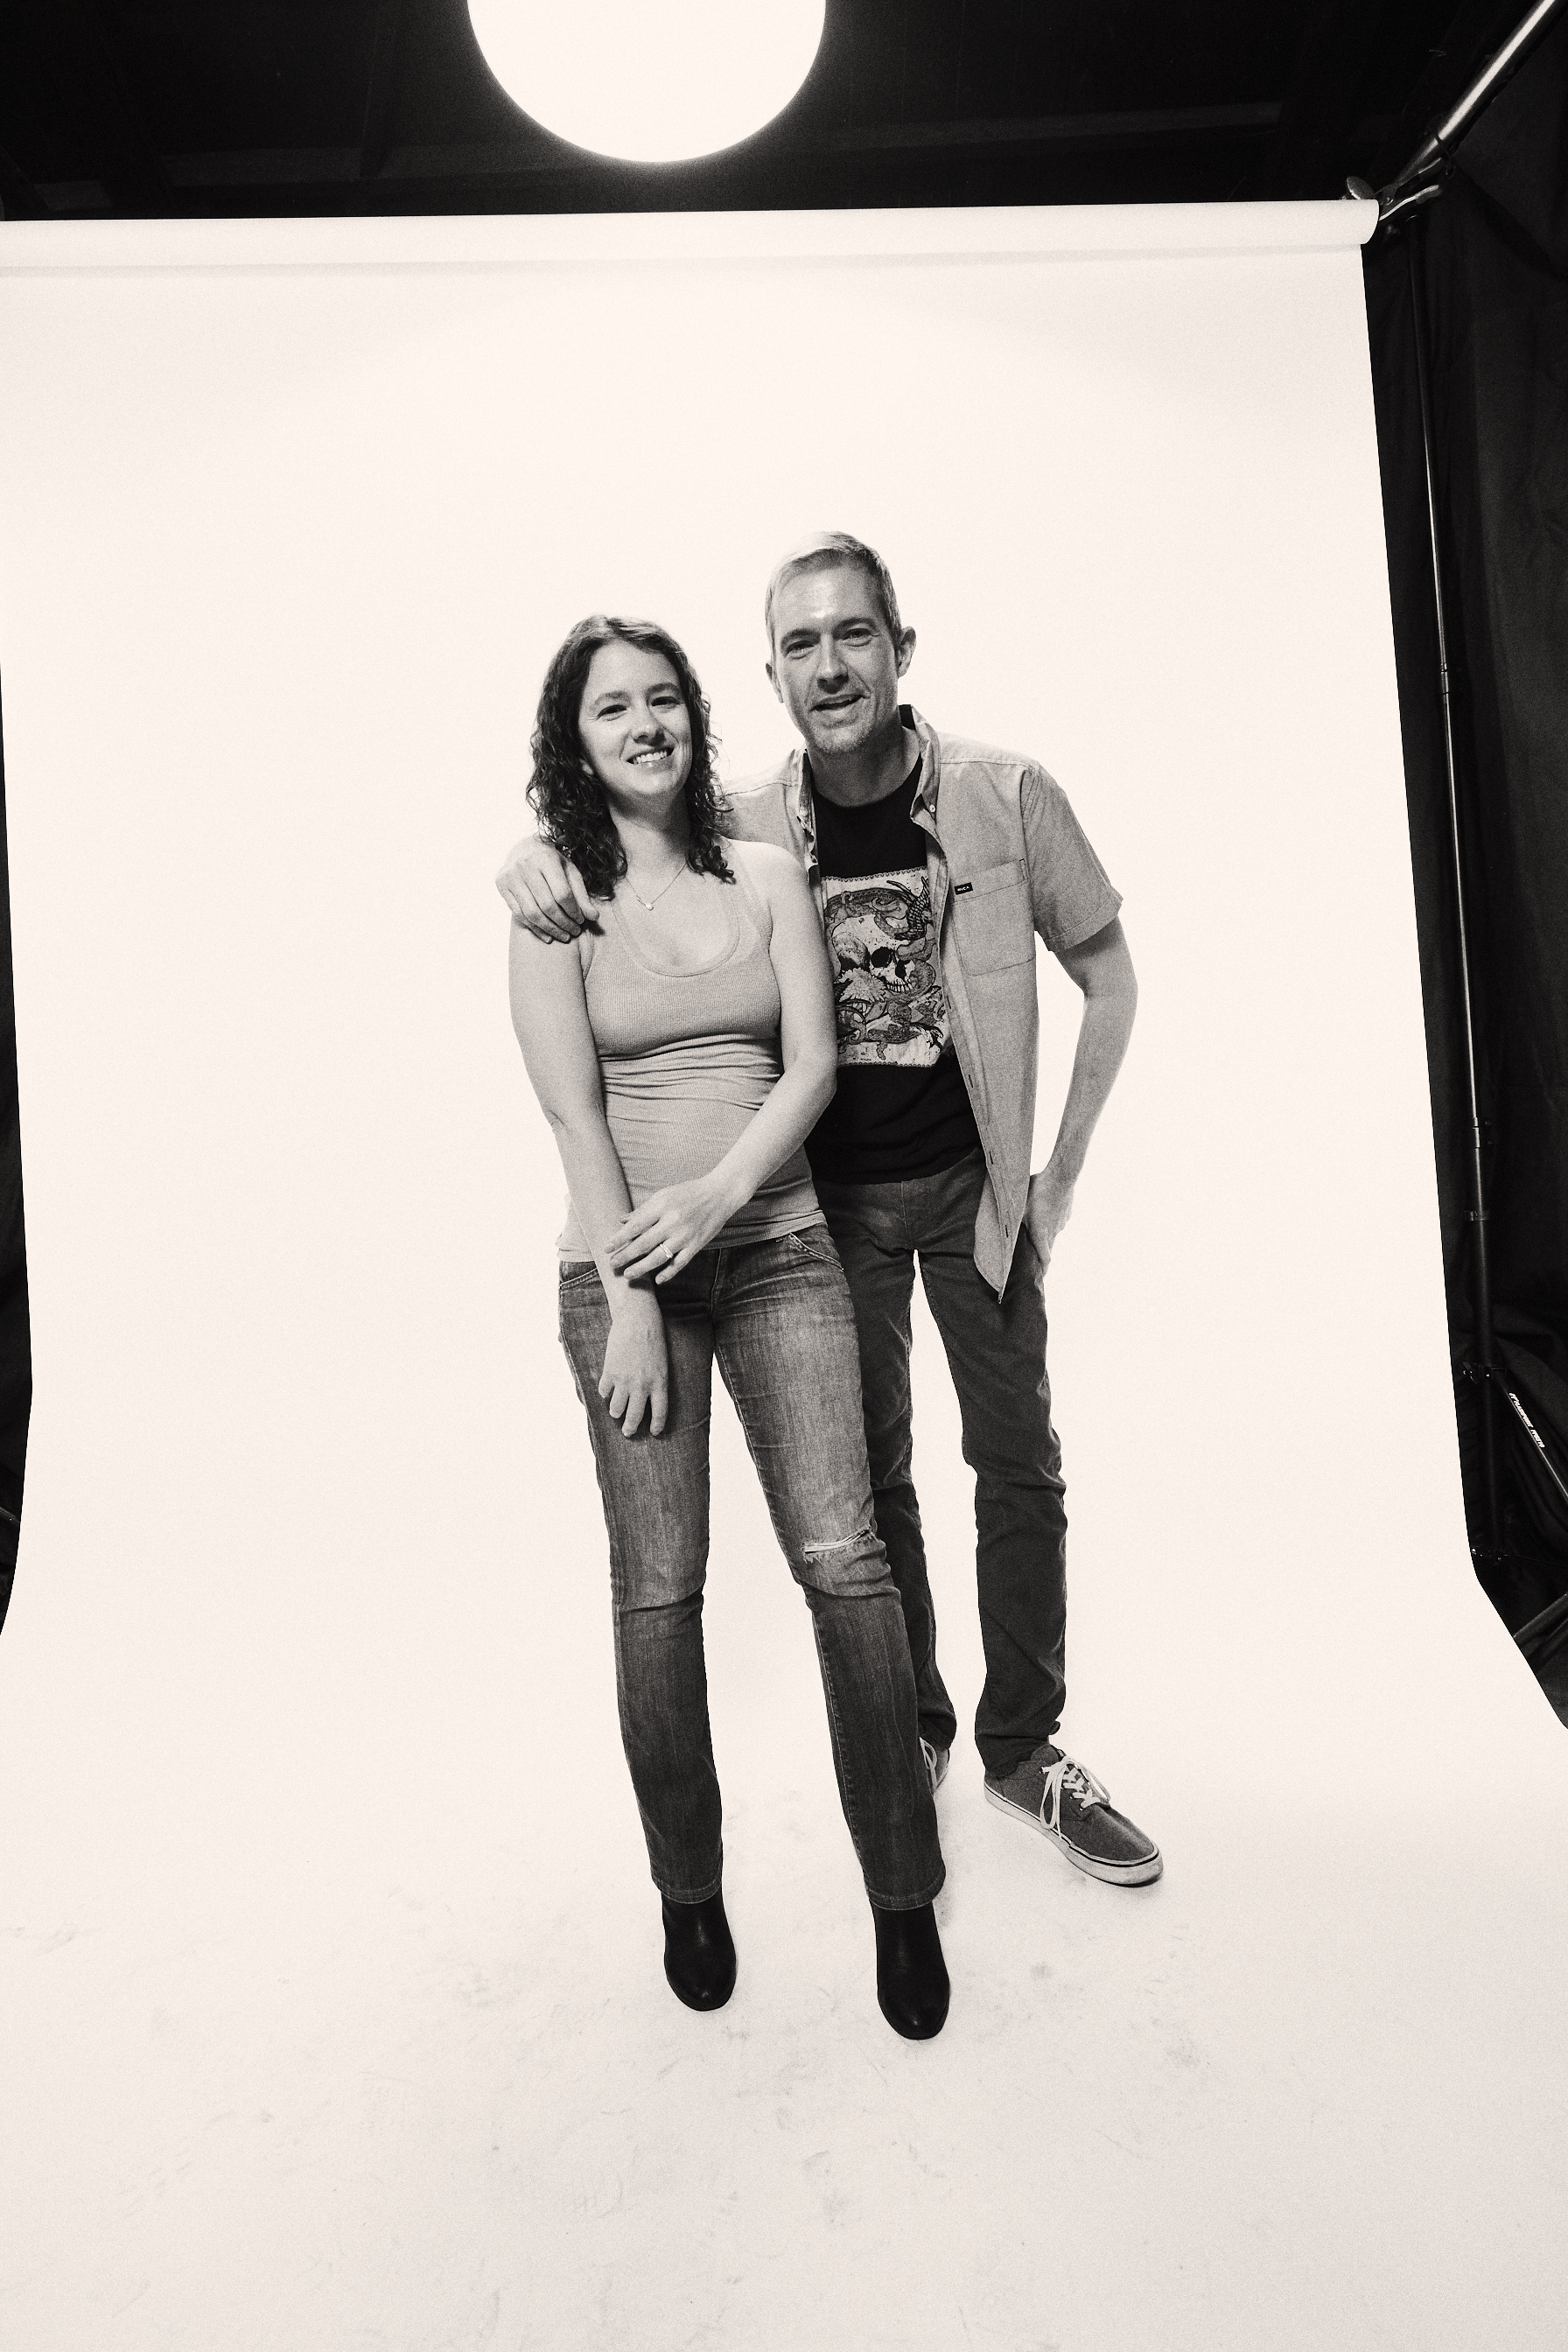 Me (the dork on the right) and the missus (the wonderful Dr. Vanessa Spooner), photographed by  Mike Miller  (!).